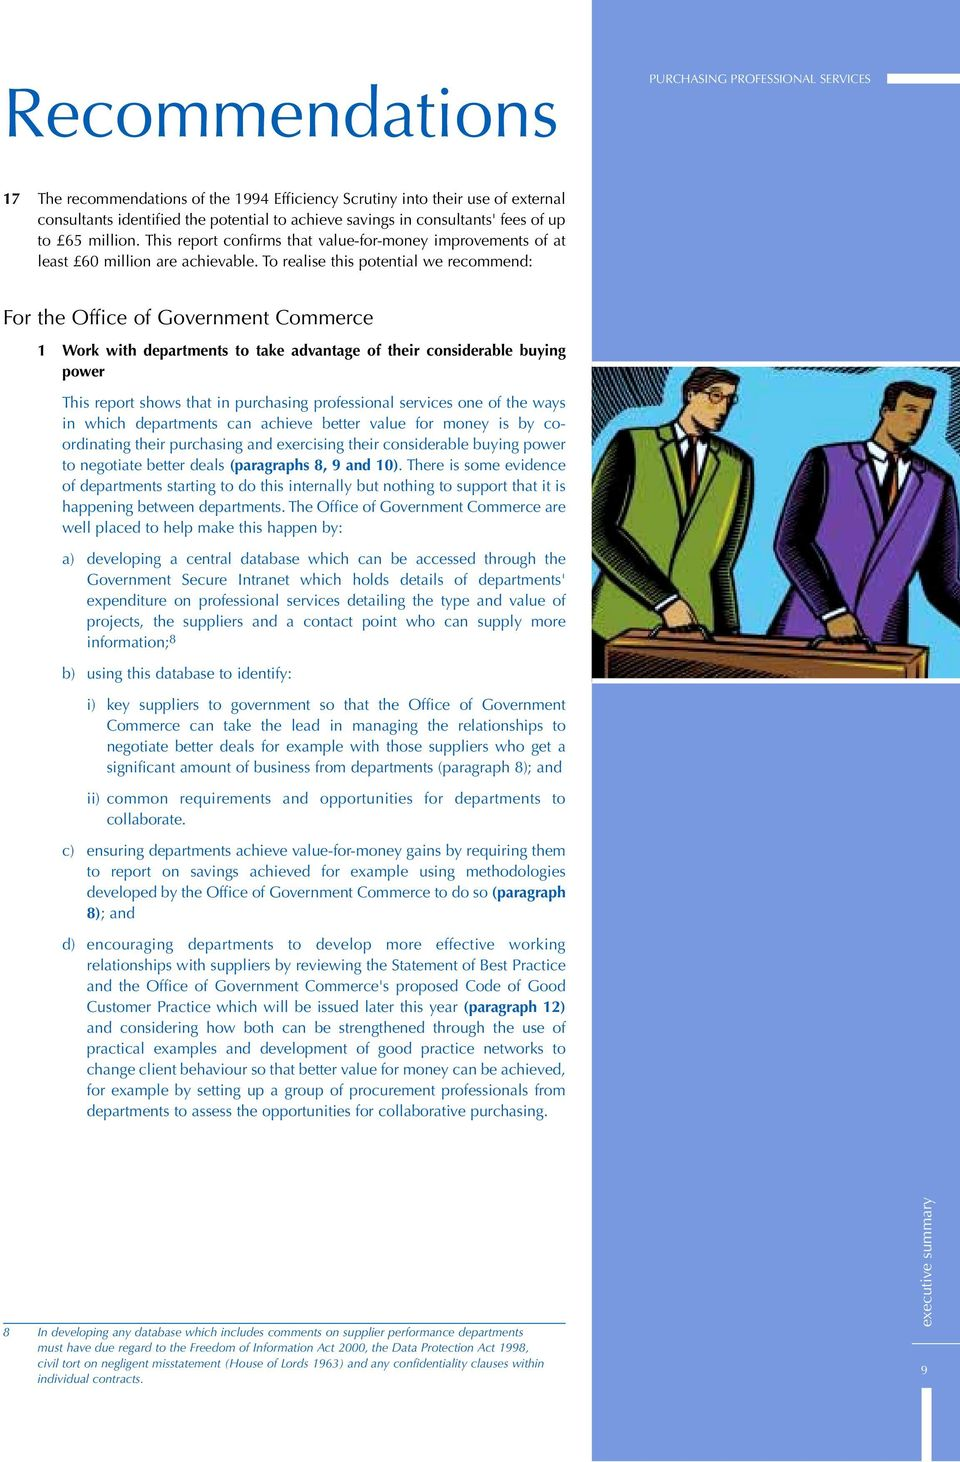 To realise this potetial we recommed: For the Office of Govermet Commerce 1 Work with departmets to take advatage of their cosiderable buyig power This report shows that i purchasig professioal